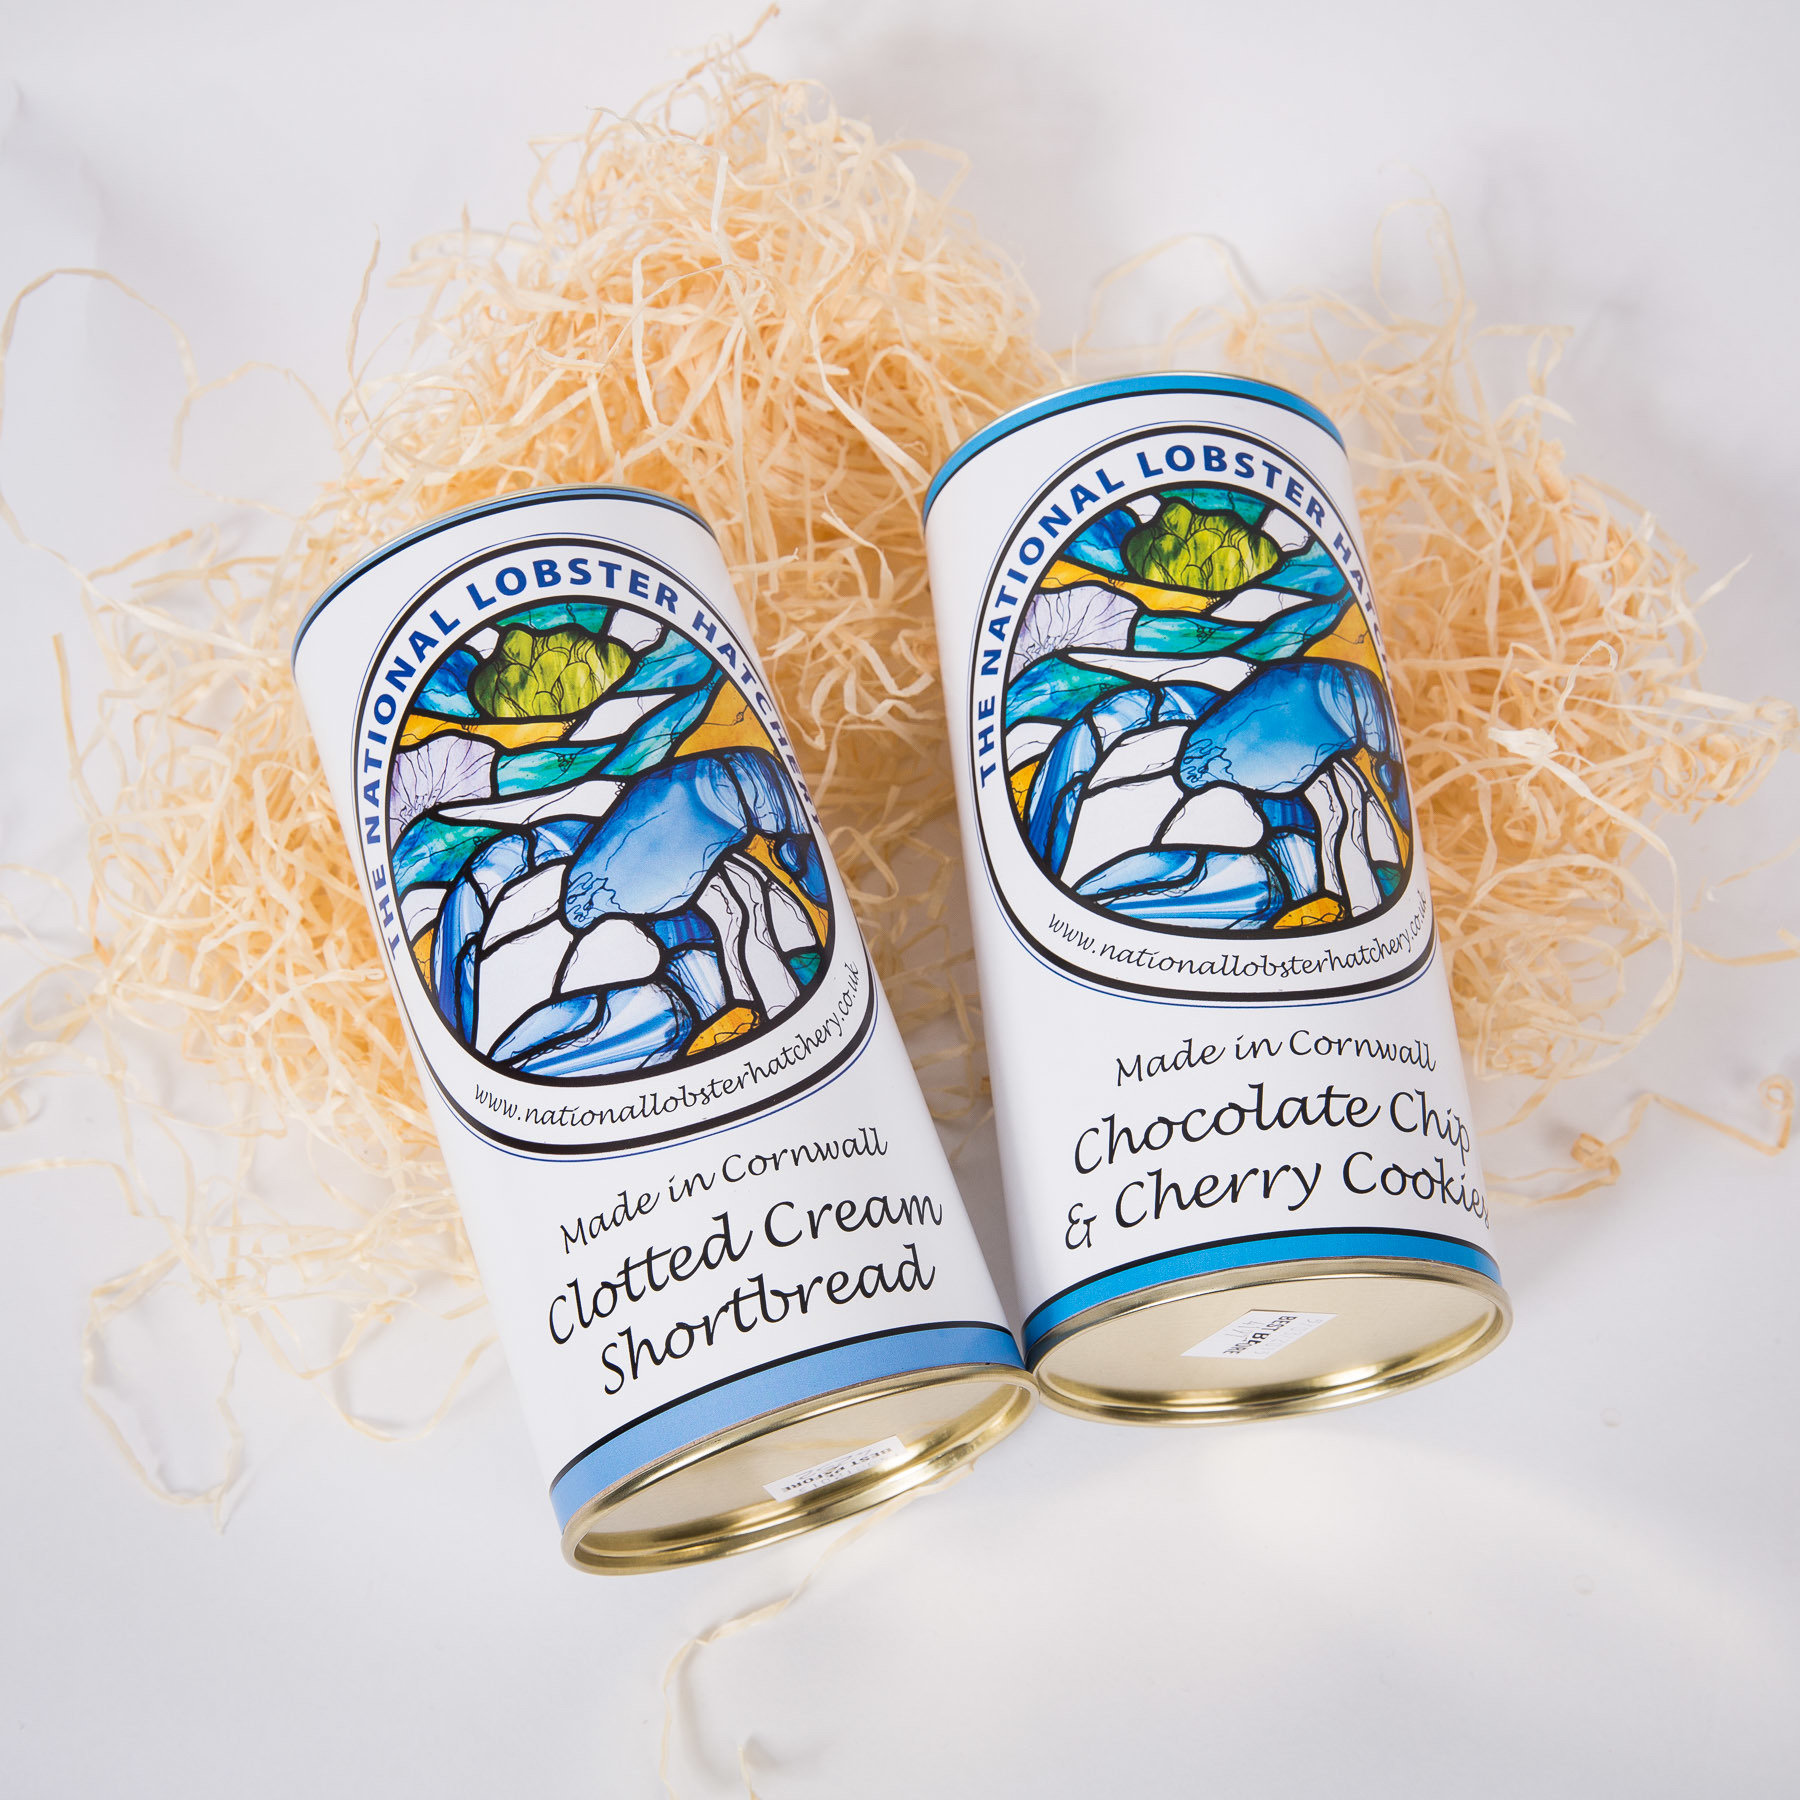 Cornish Clotted Cream Shortbread 00122